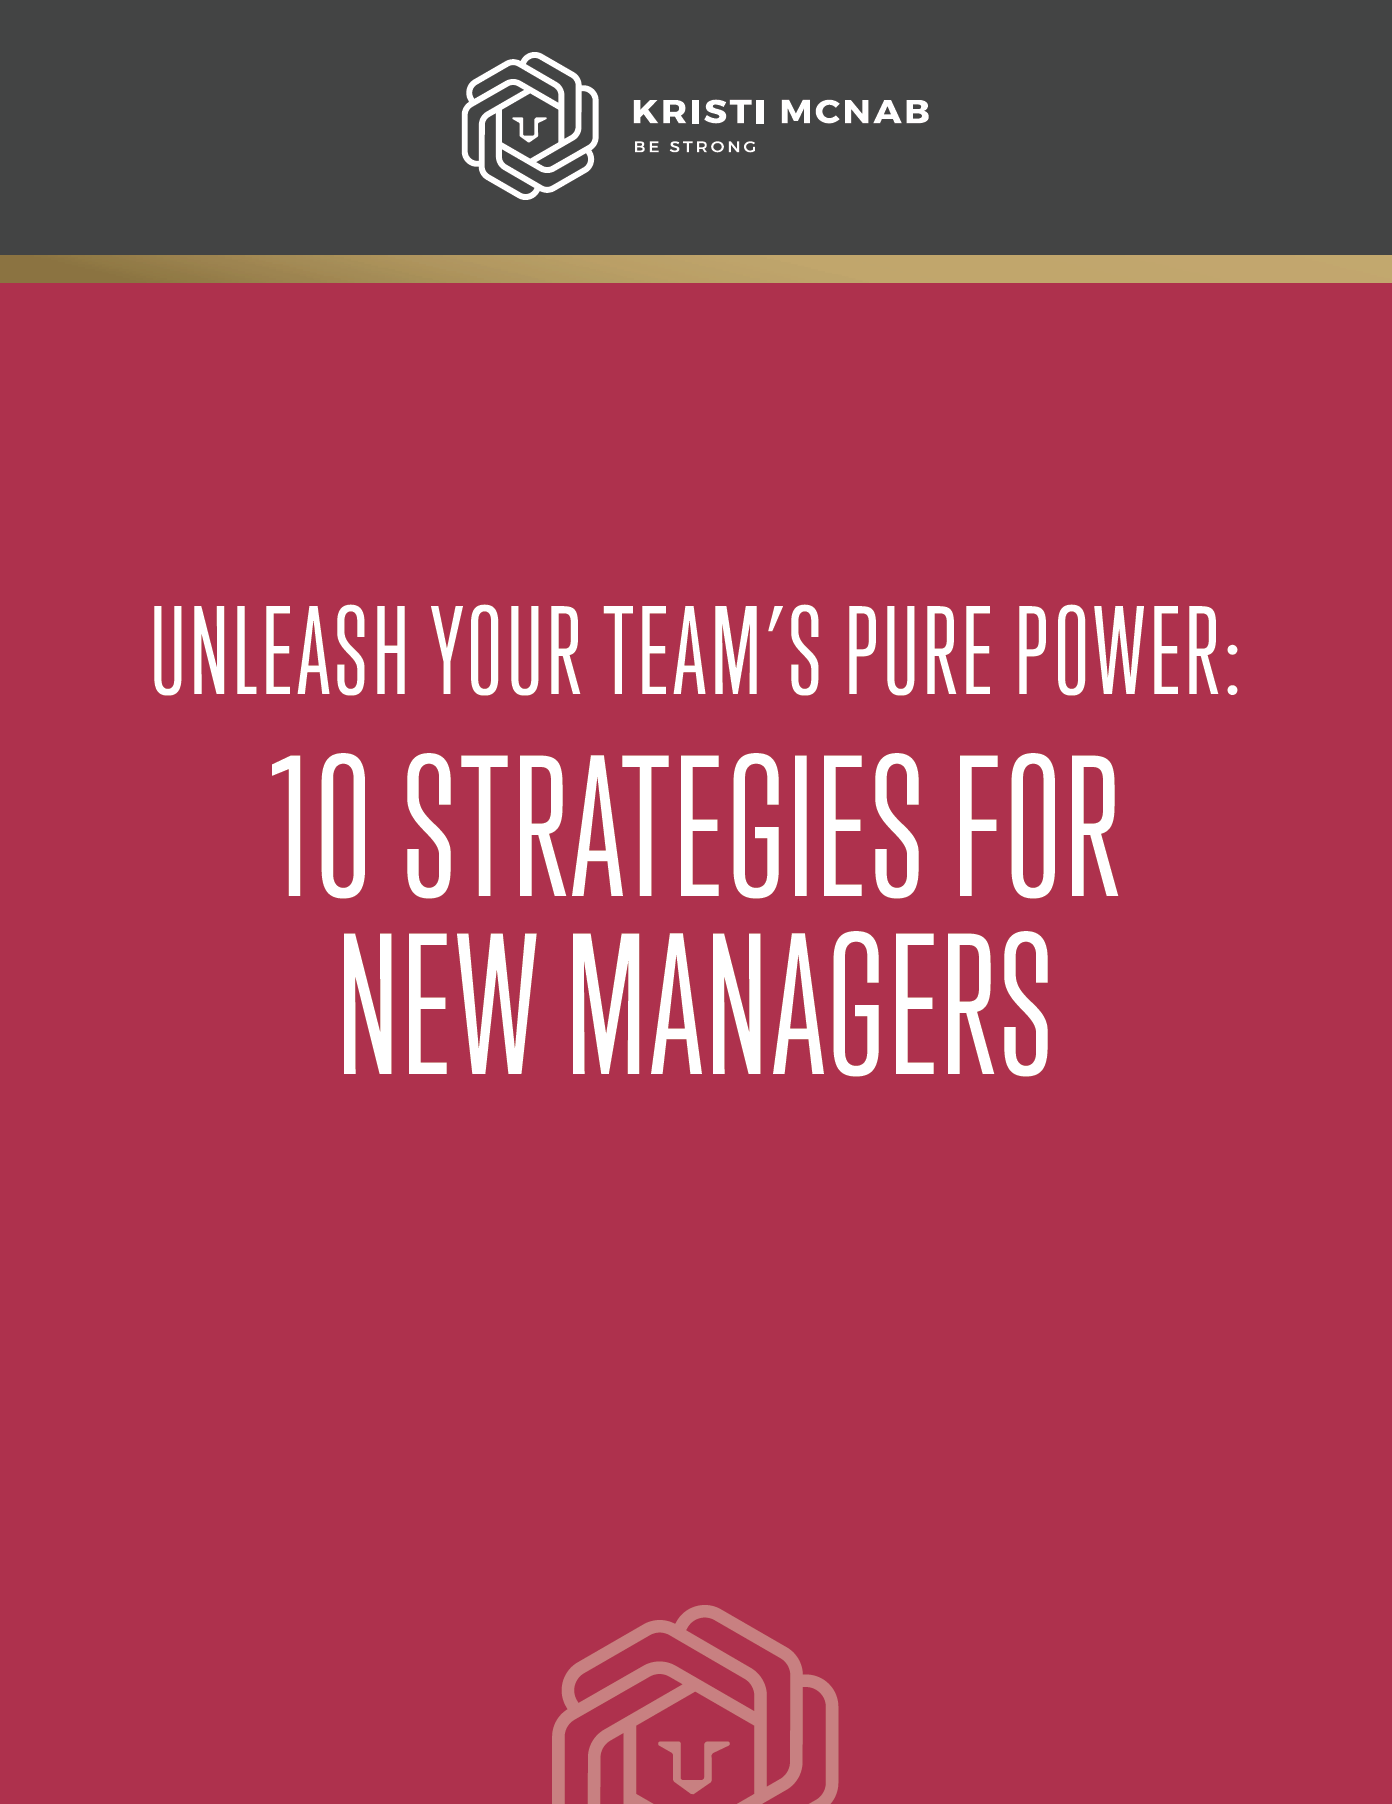 Free Download - Here's your free download: 10 Strategies for New Managers.Recently hired to a new position or chosen to lead a team? Explore these 10 ideas to start off powerfully and effectively.